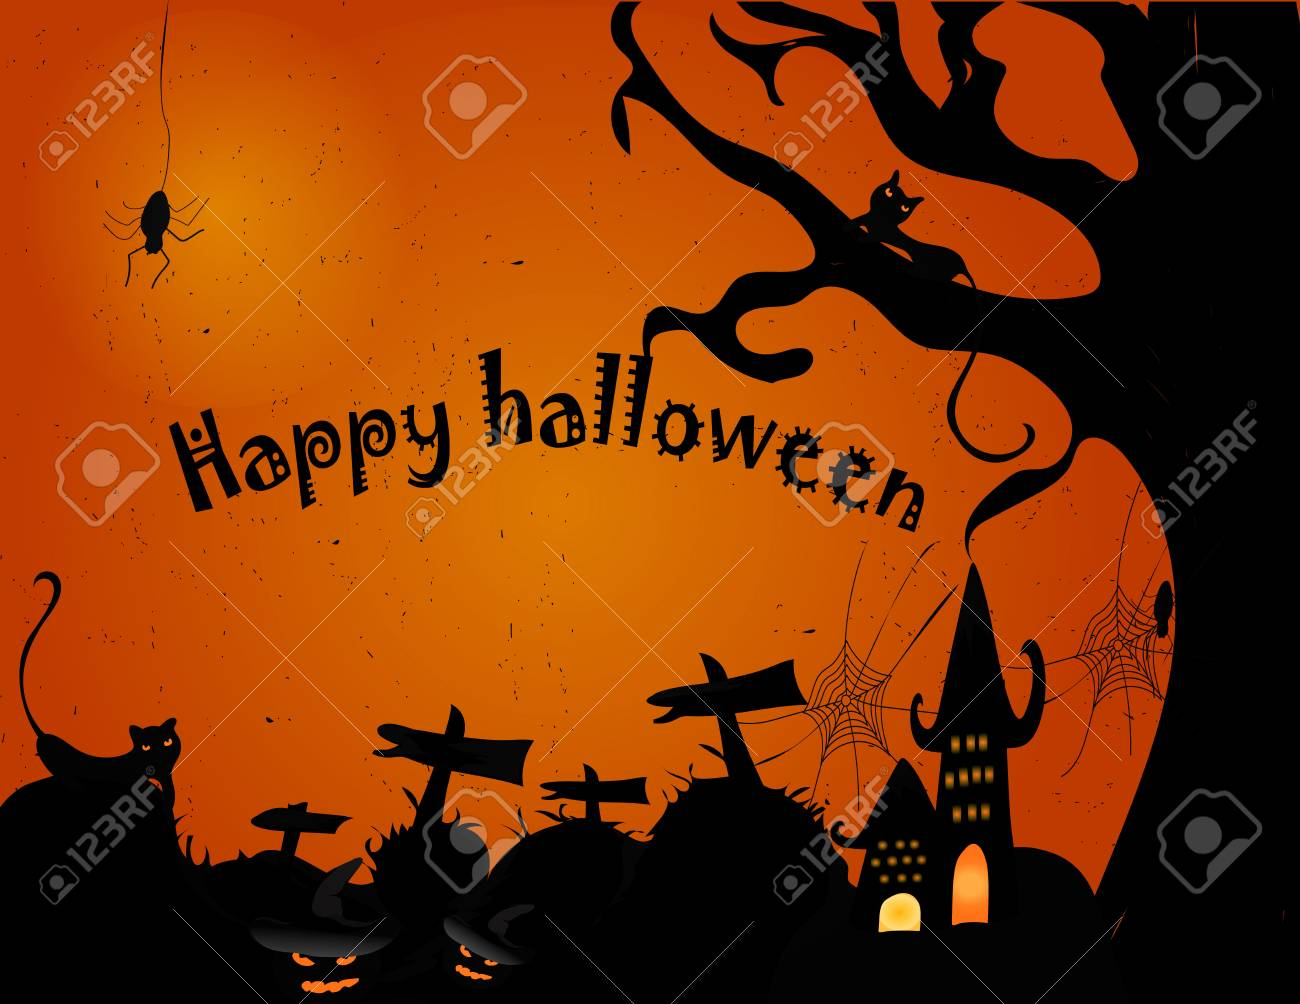 Great Wallpaper Halloween Red - 88085218-halloween-wallpapers-red-brick-wall-pumpkin-trees-and-awesome-castle-  Picture_468074.jpg